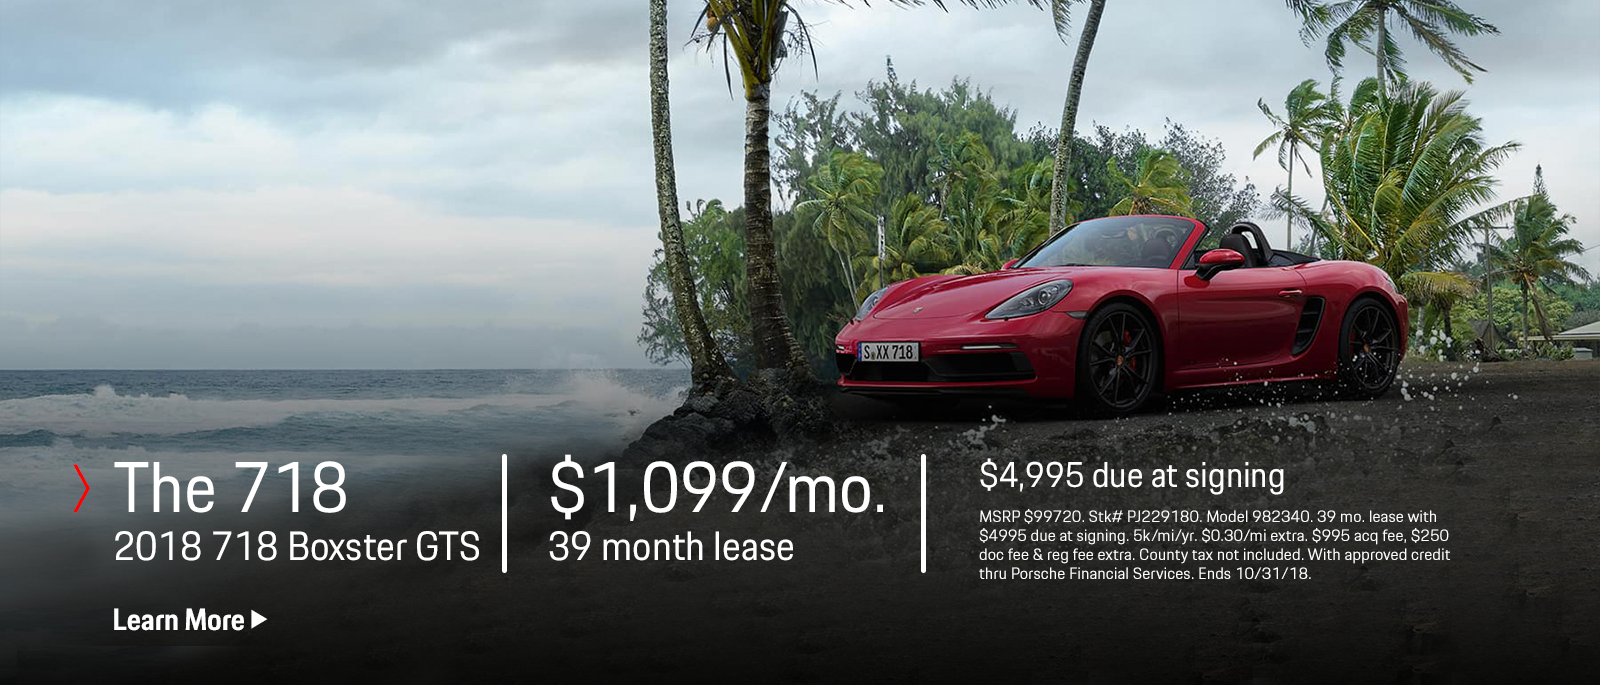 PNOOH-18398-webslider-1600x685-OCT-boxstergts